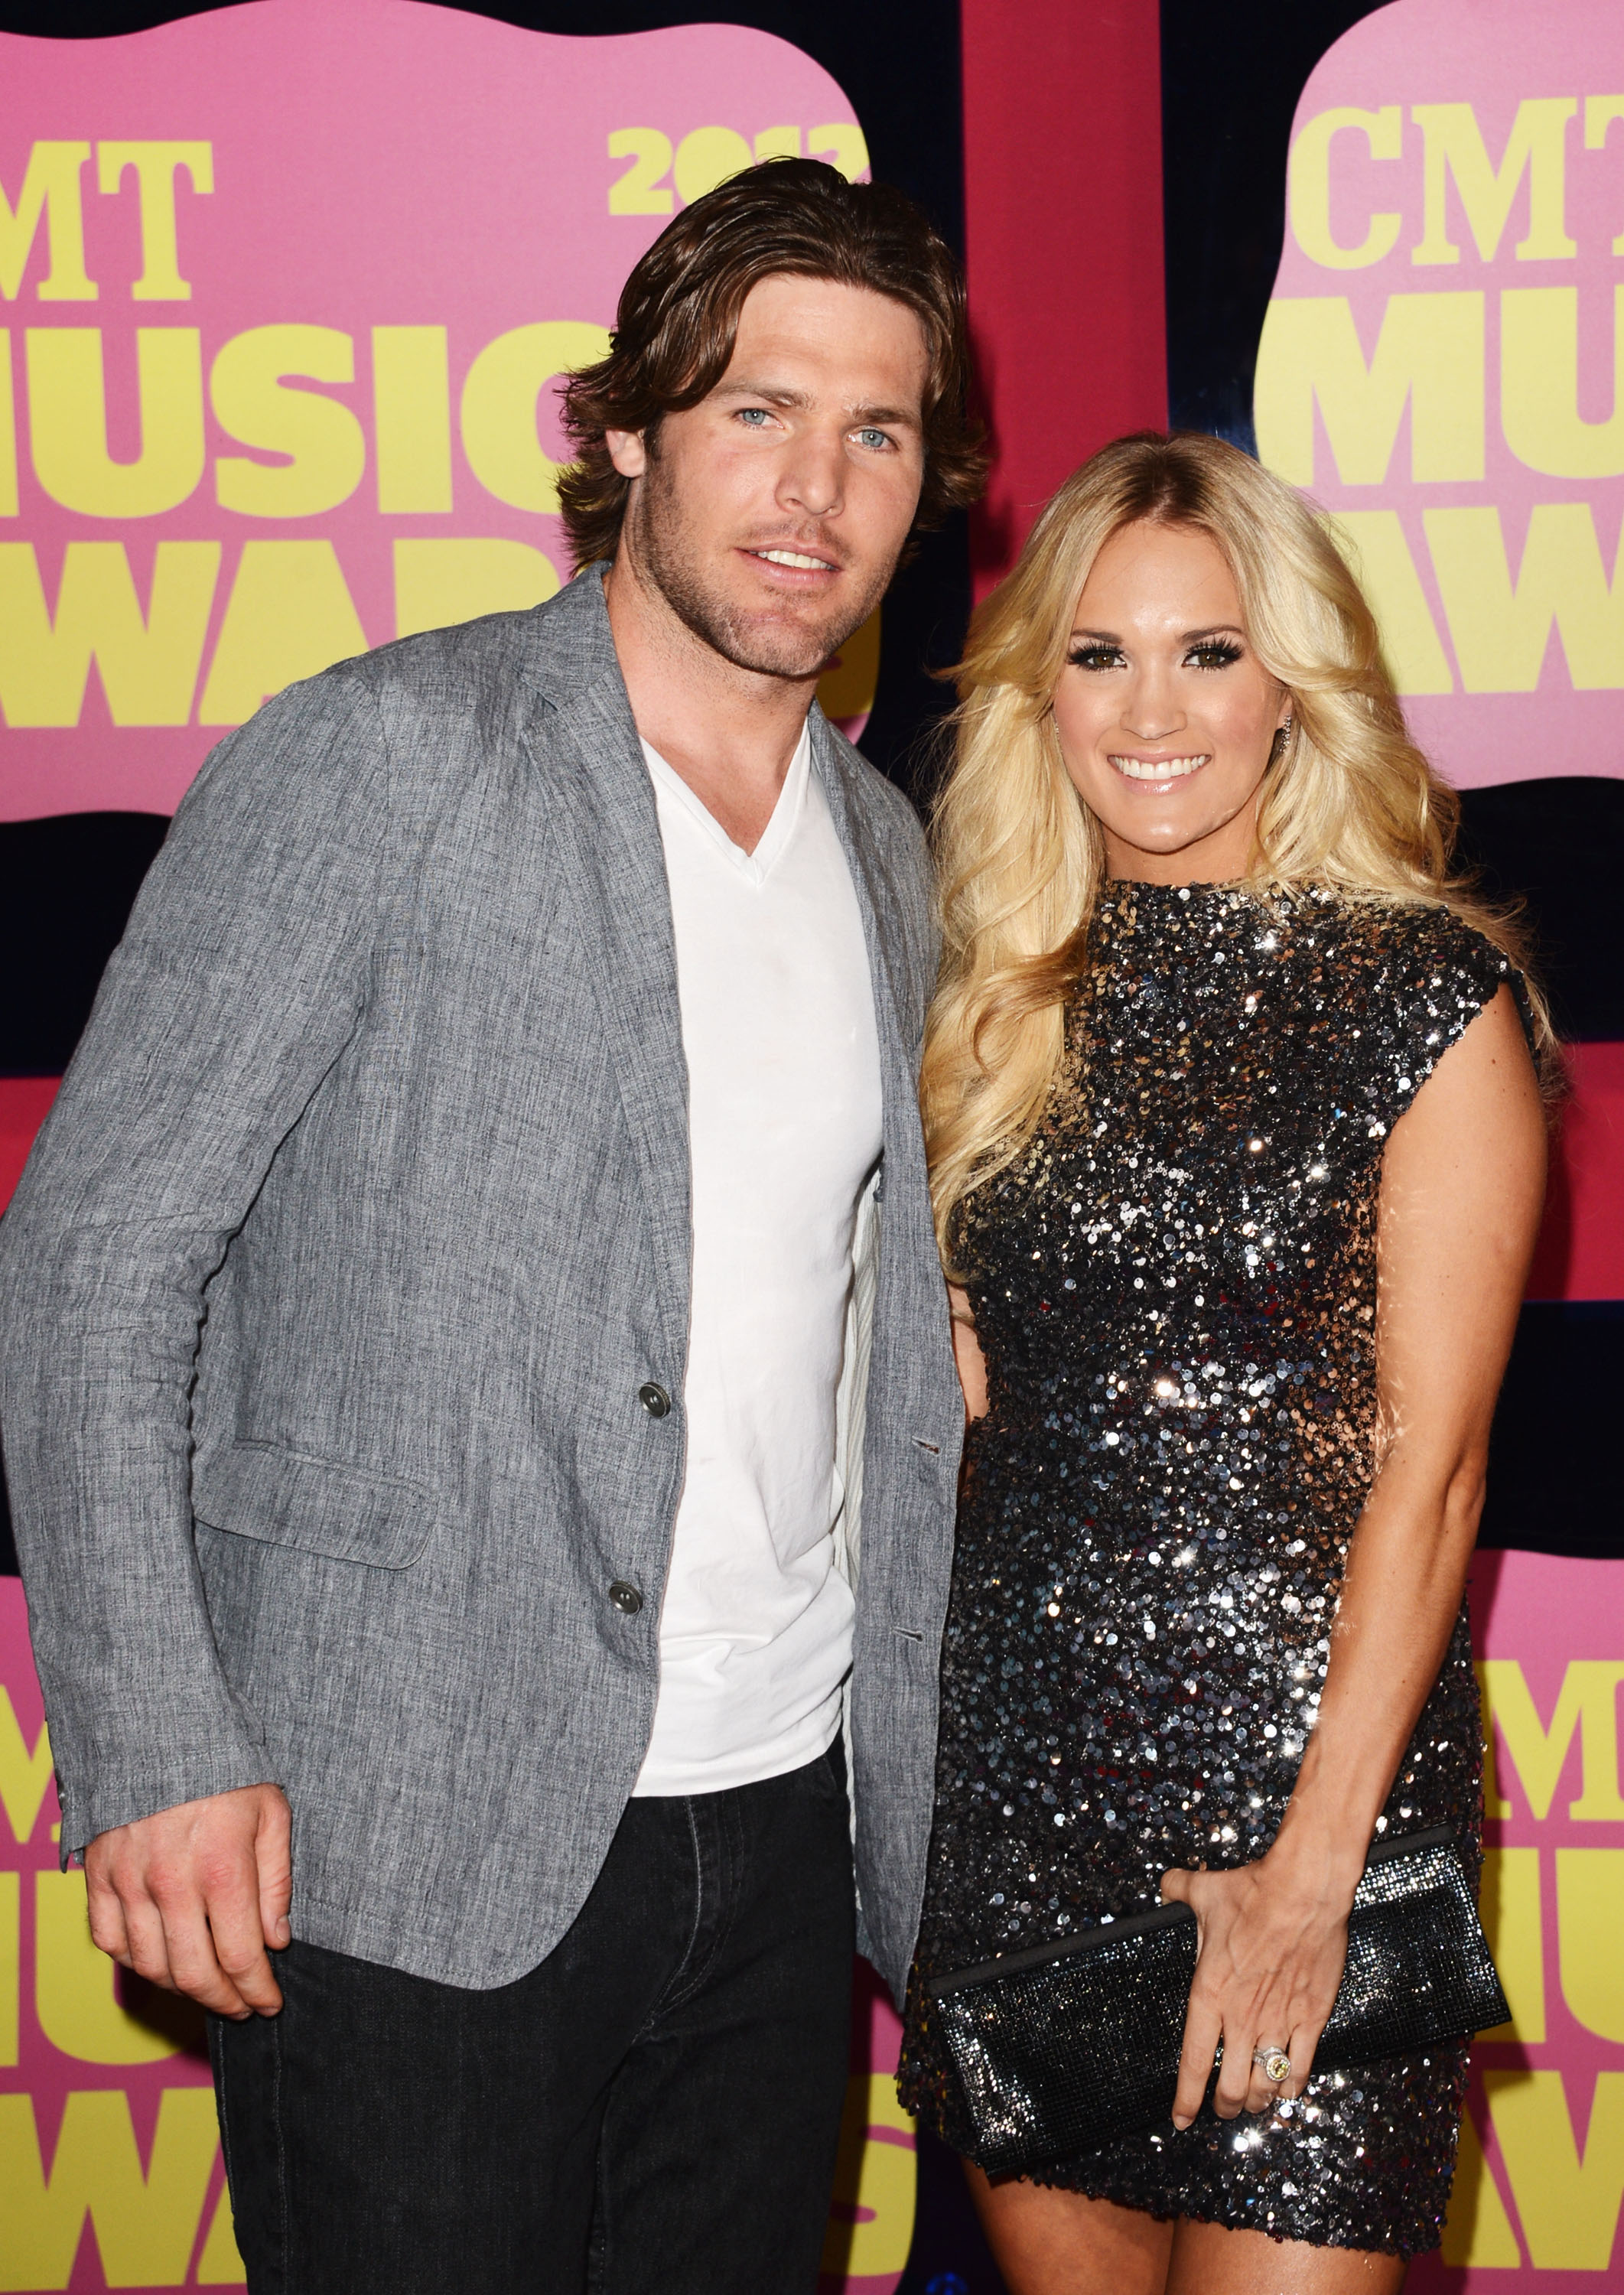 Carrie underwood posed with husband mike fisher at the cmt for Carrie underwood husband mike fisher